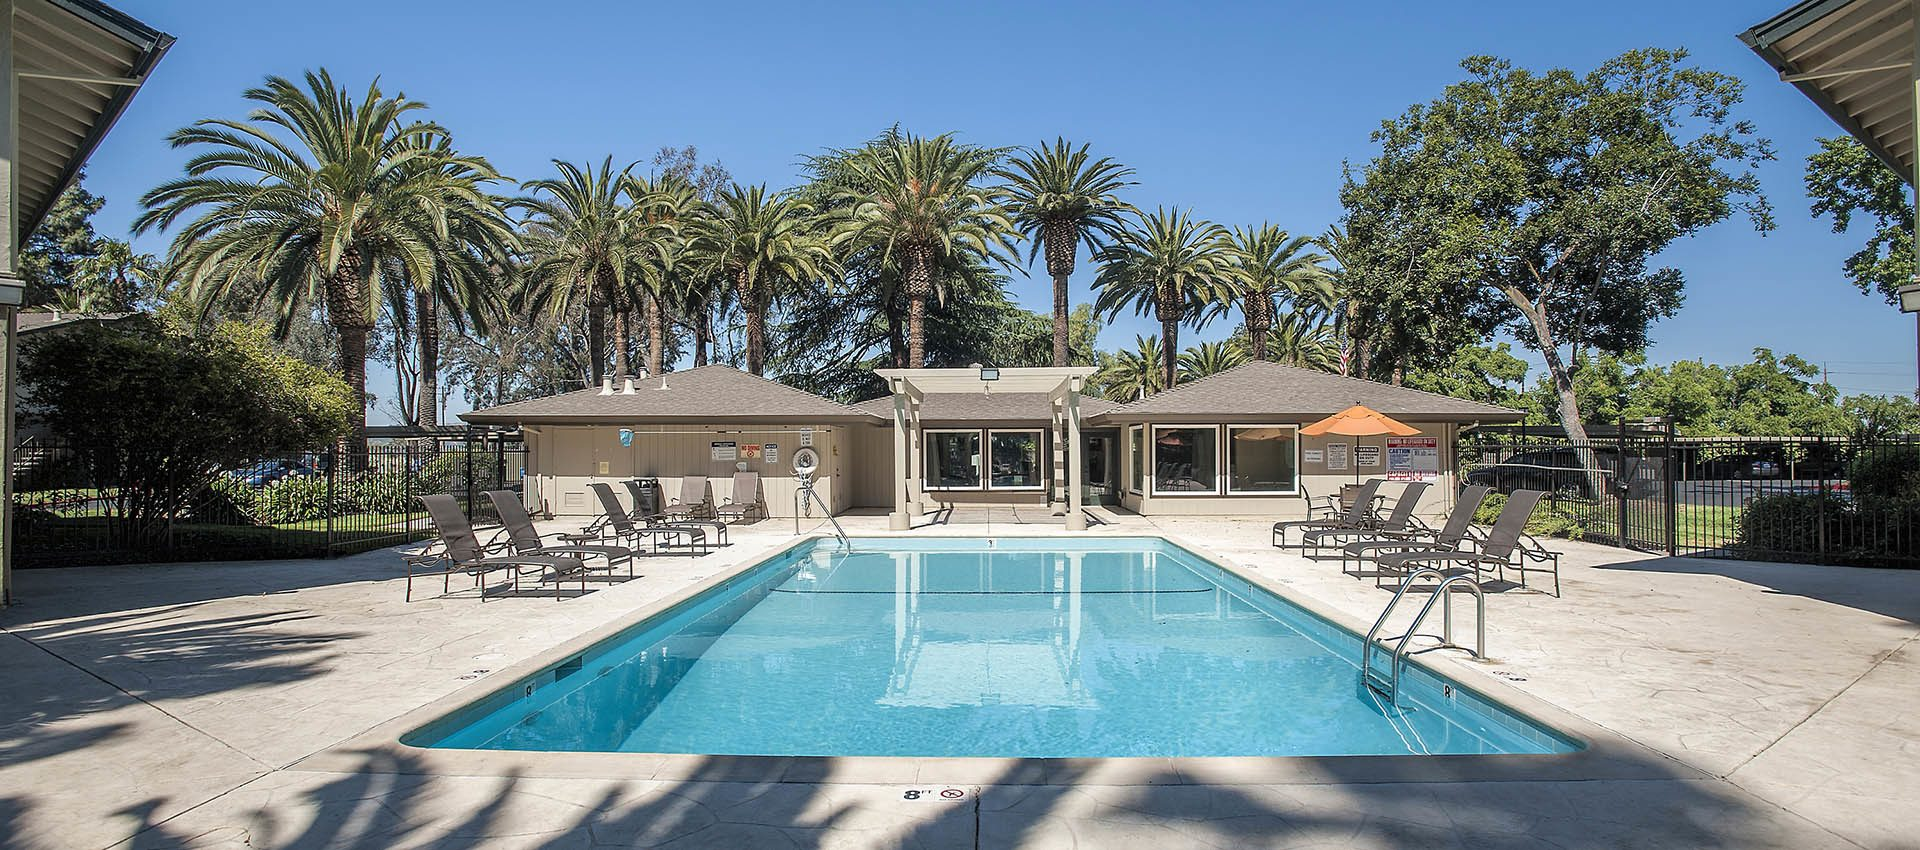 Amenities include a sparkling outdoor pool